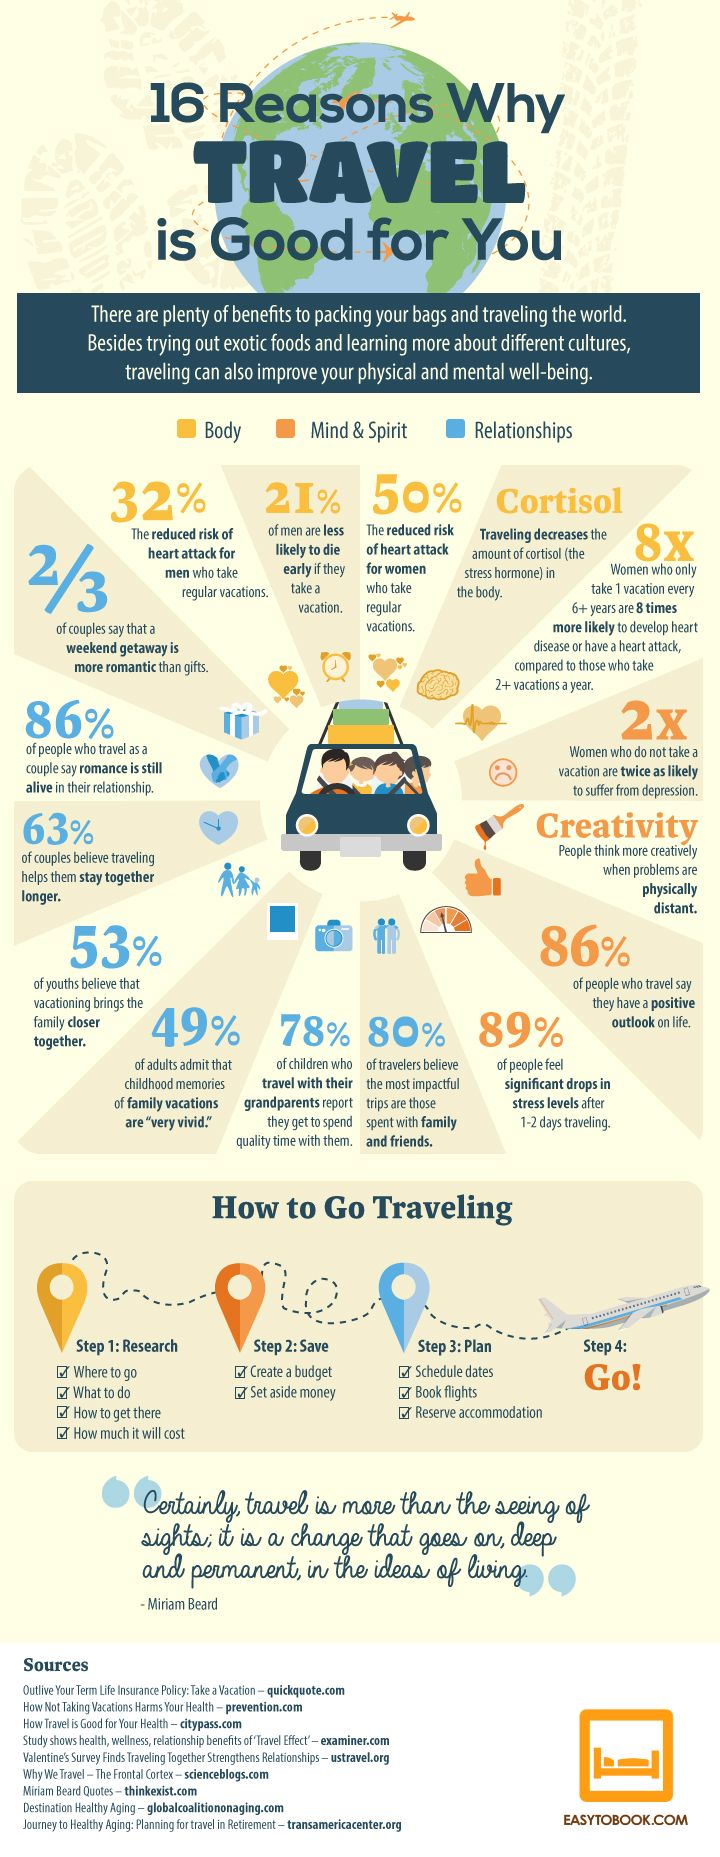 16 Reasons Why Travel Is Good For You. Tell us something we didn't already know!